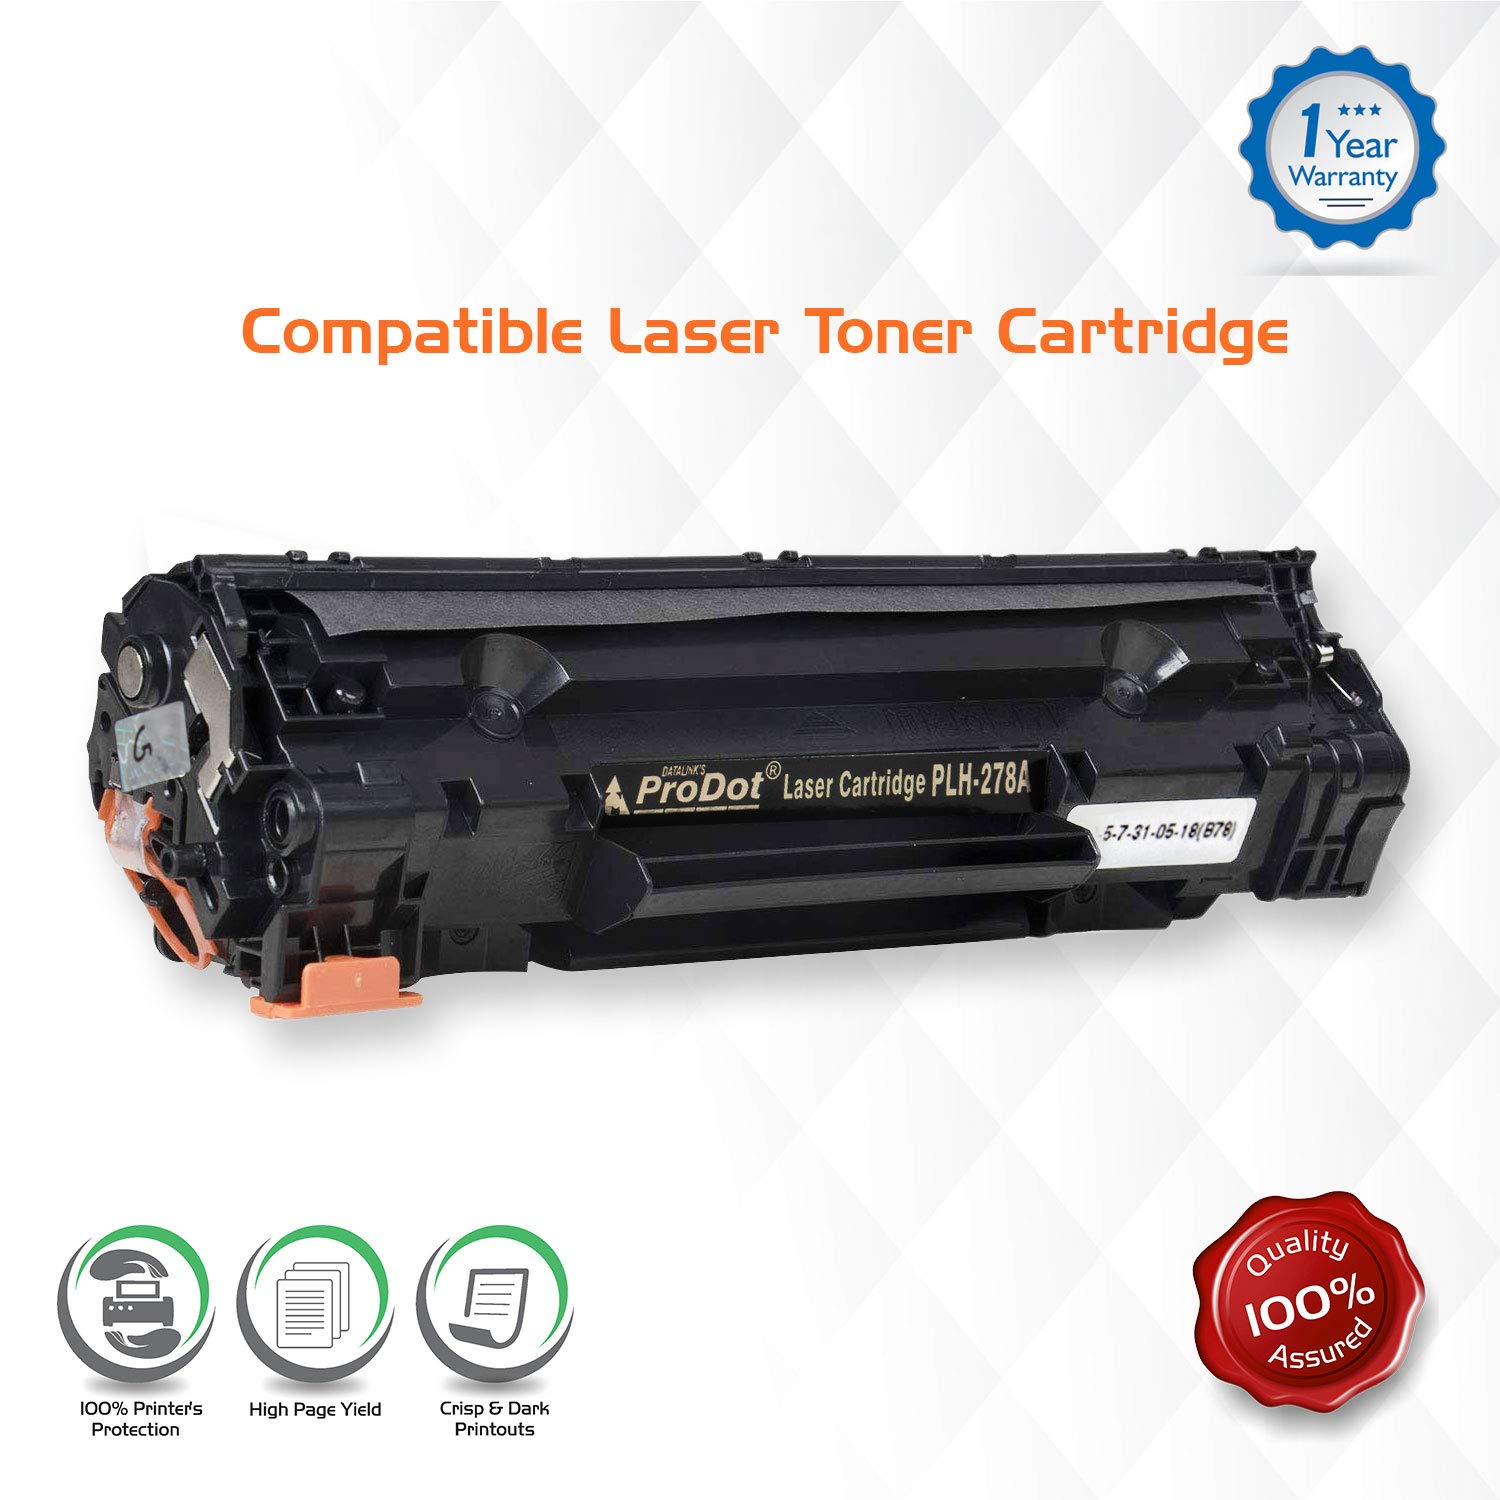 ProDot PLH-278A Compatible Laser Manufactured Toner Cartridge